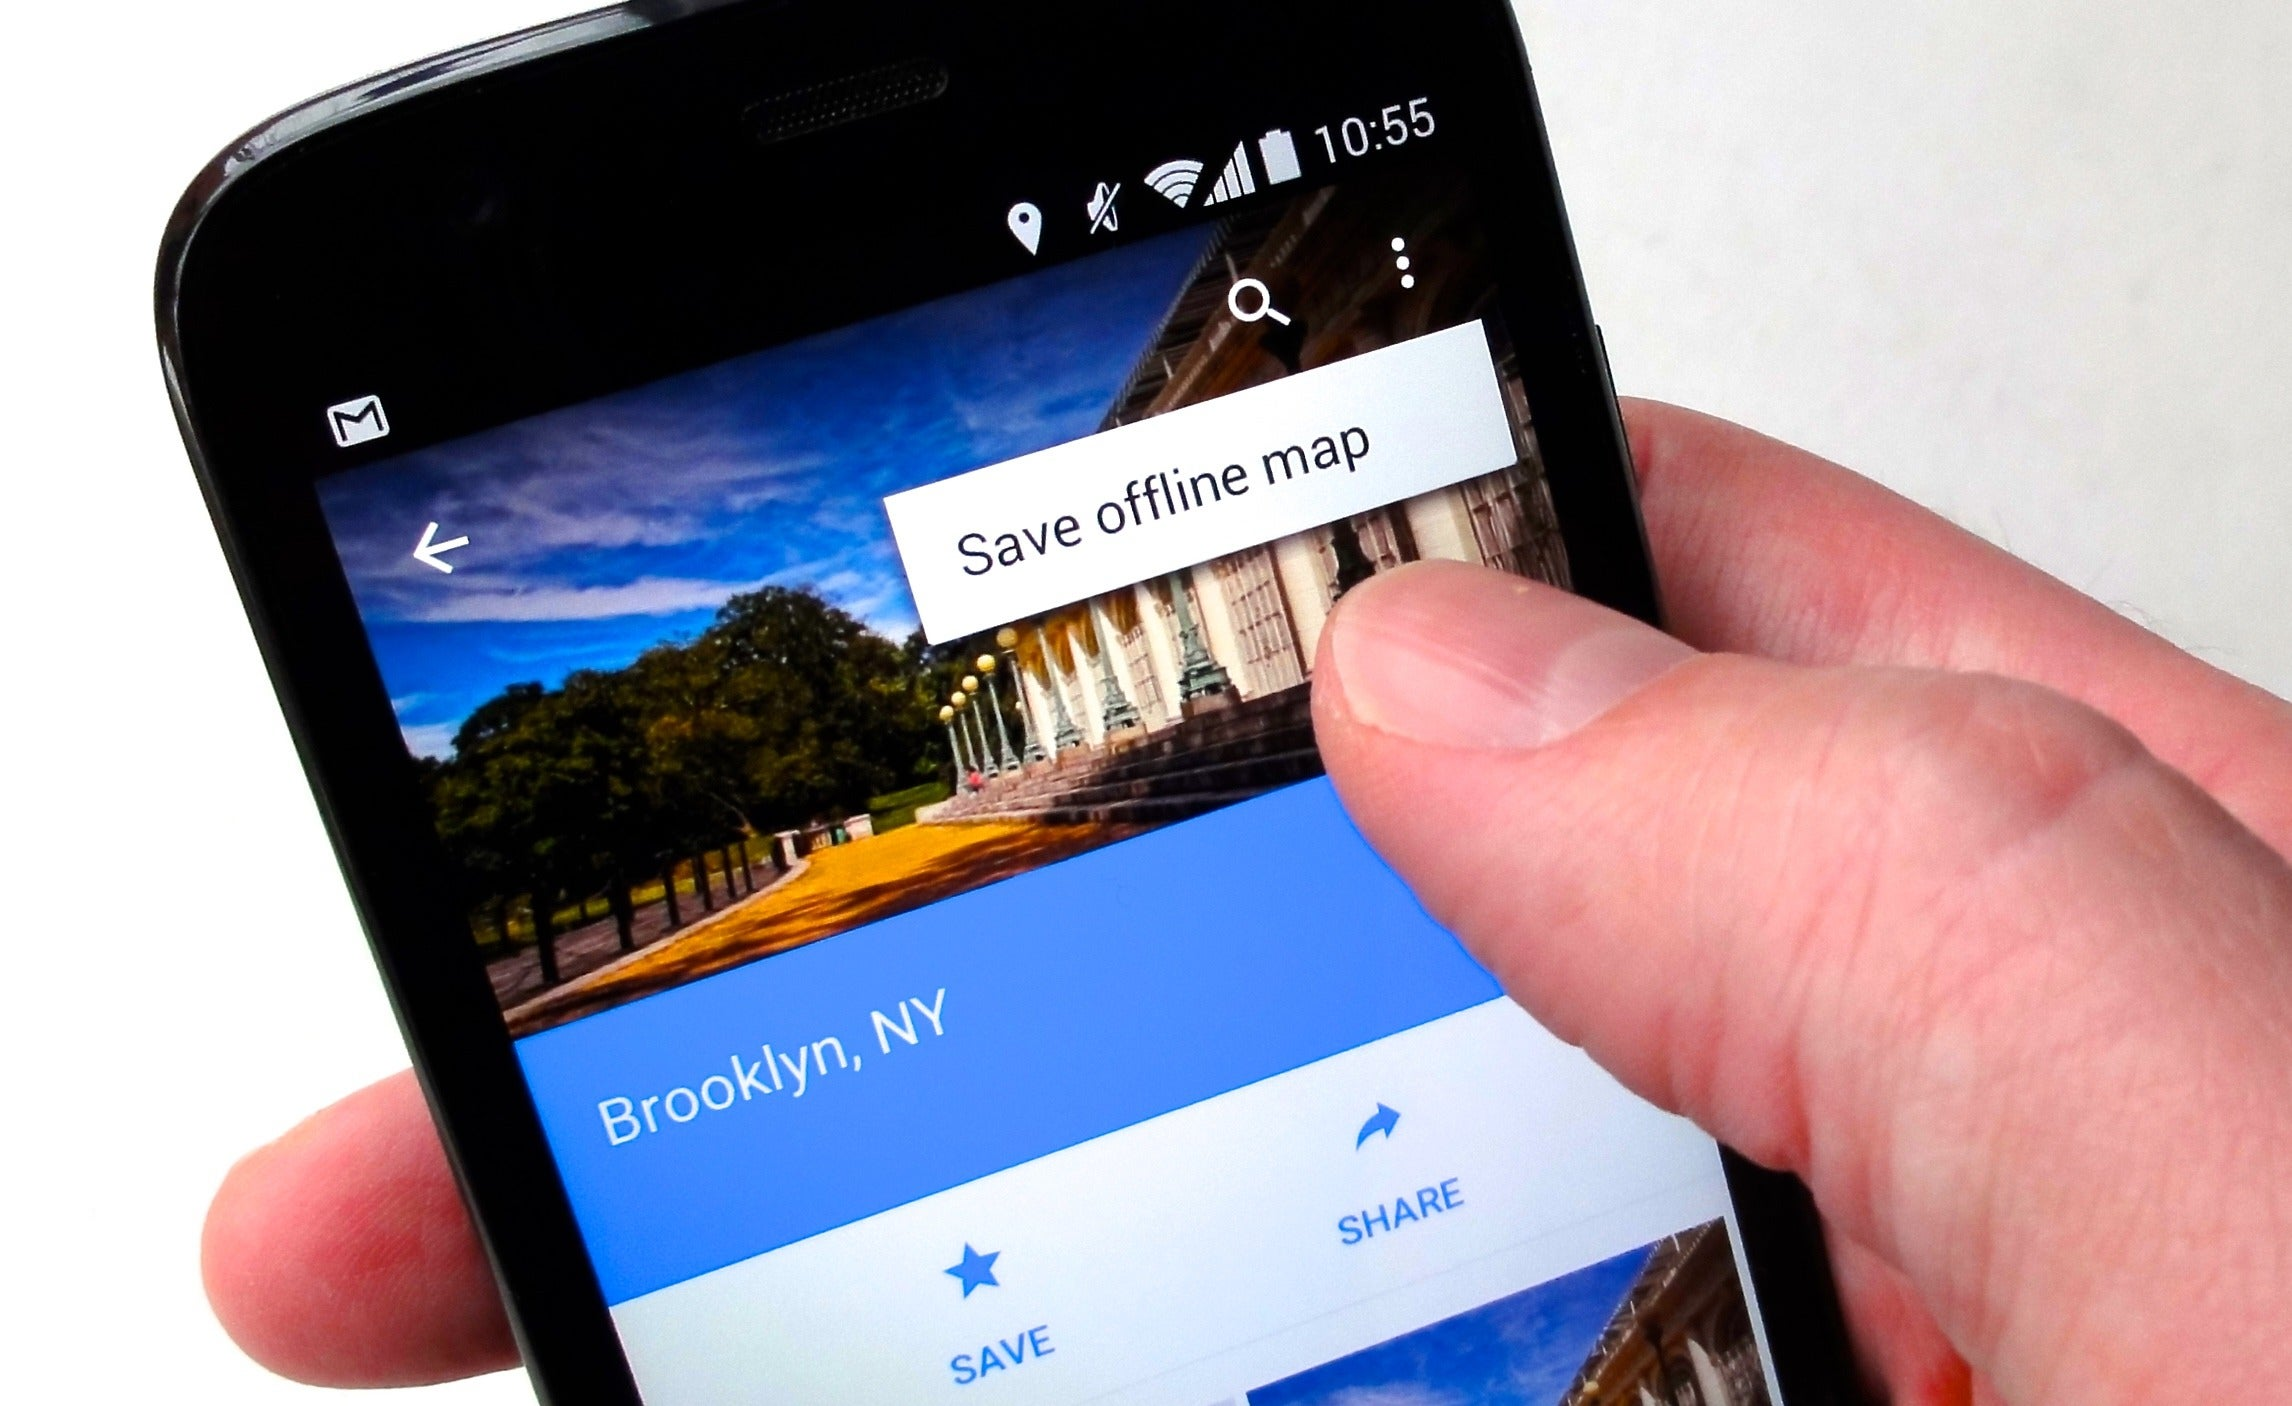 8 great Google Maps tips for Android and iOS   PCWorld google maps app save offline map 3